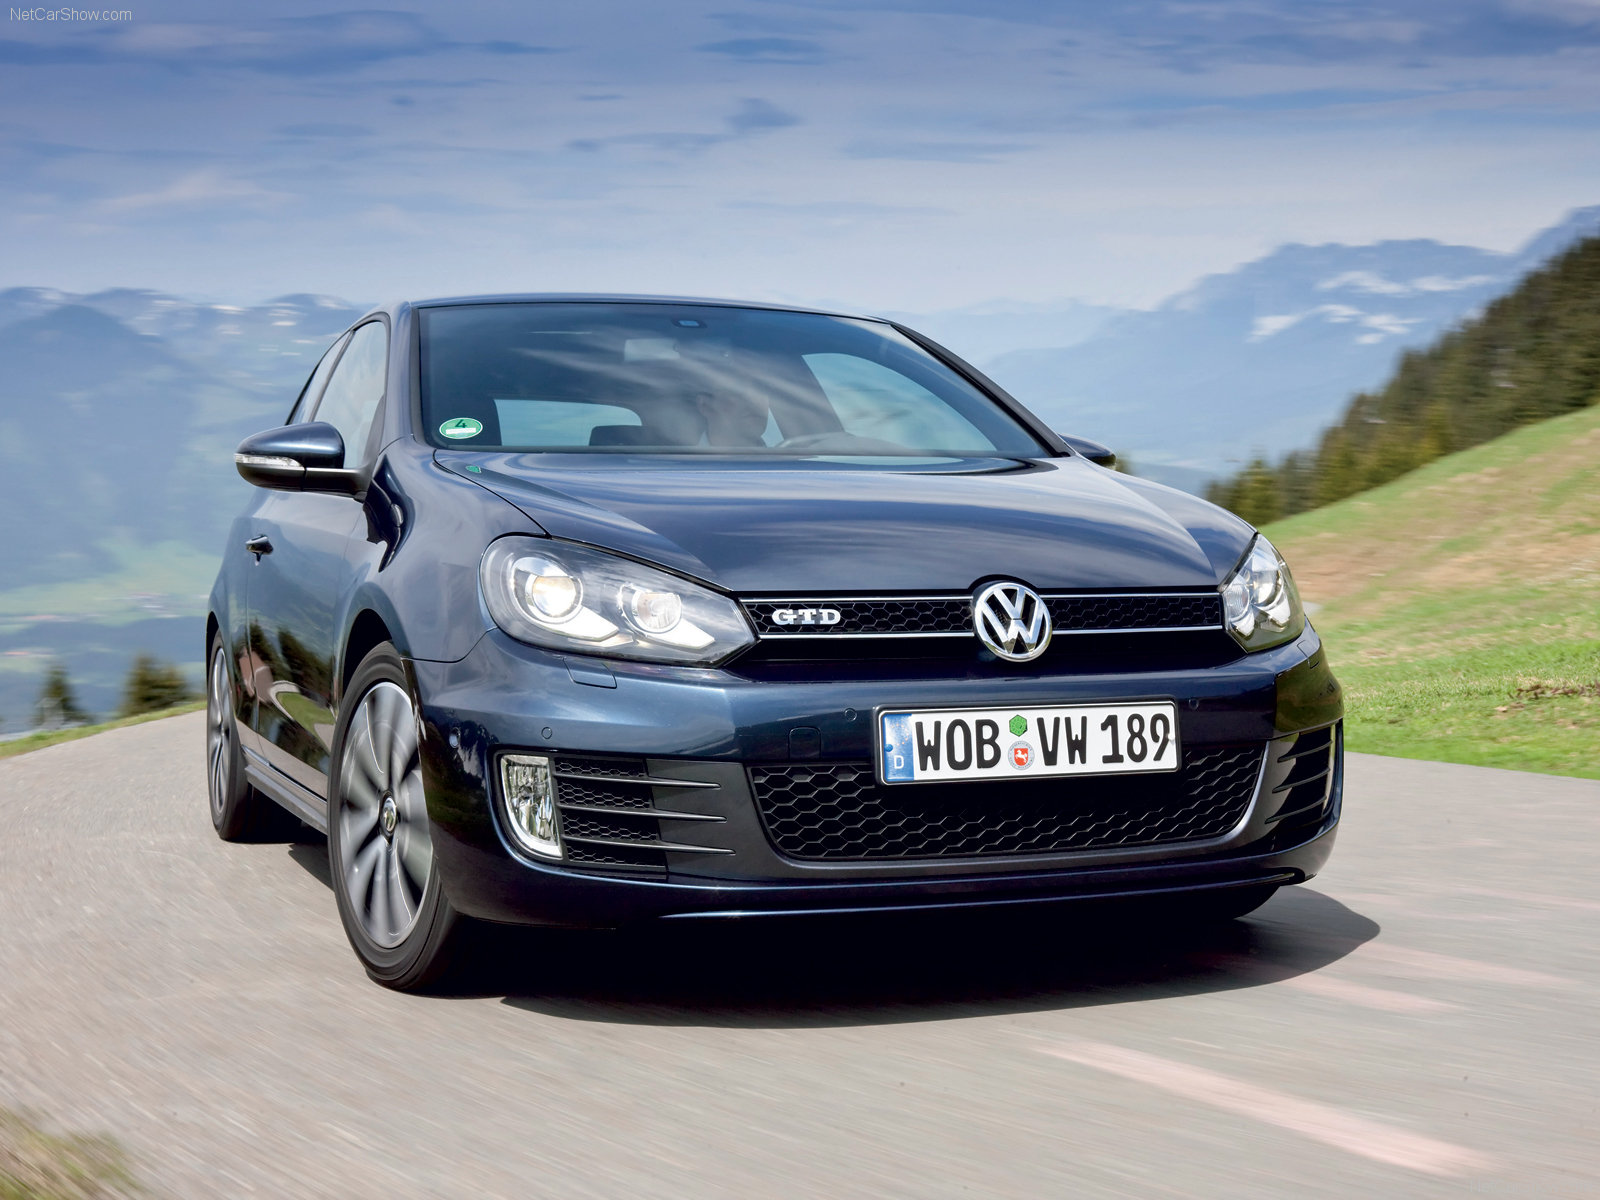 volkswagen golf gtd photos photo gallery page 3. Black Bedroom Furniture Sets. Home Design Ideas